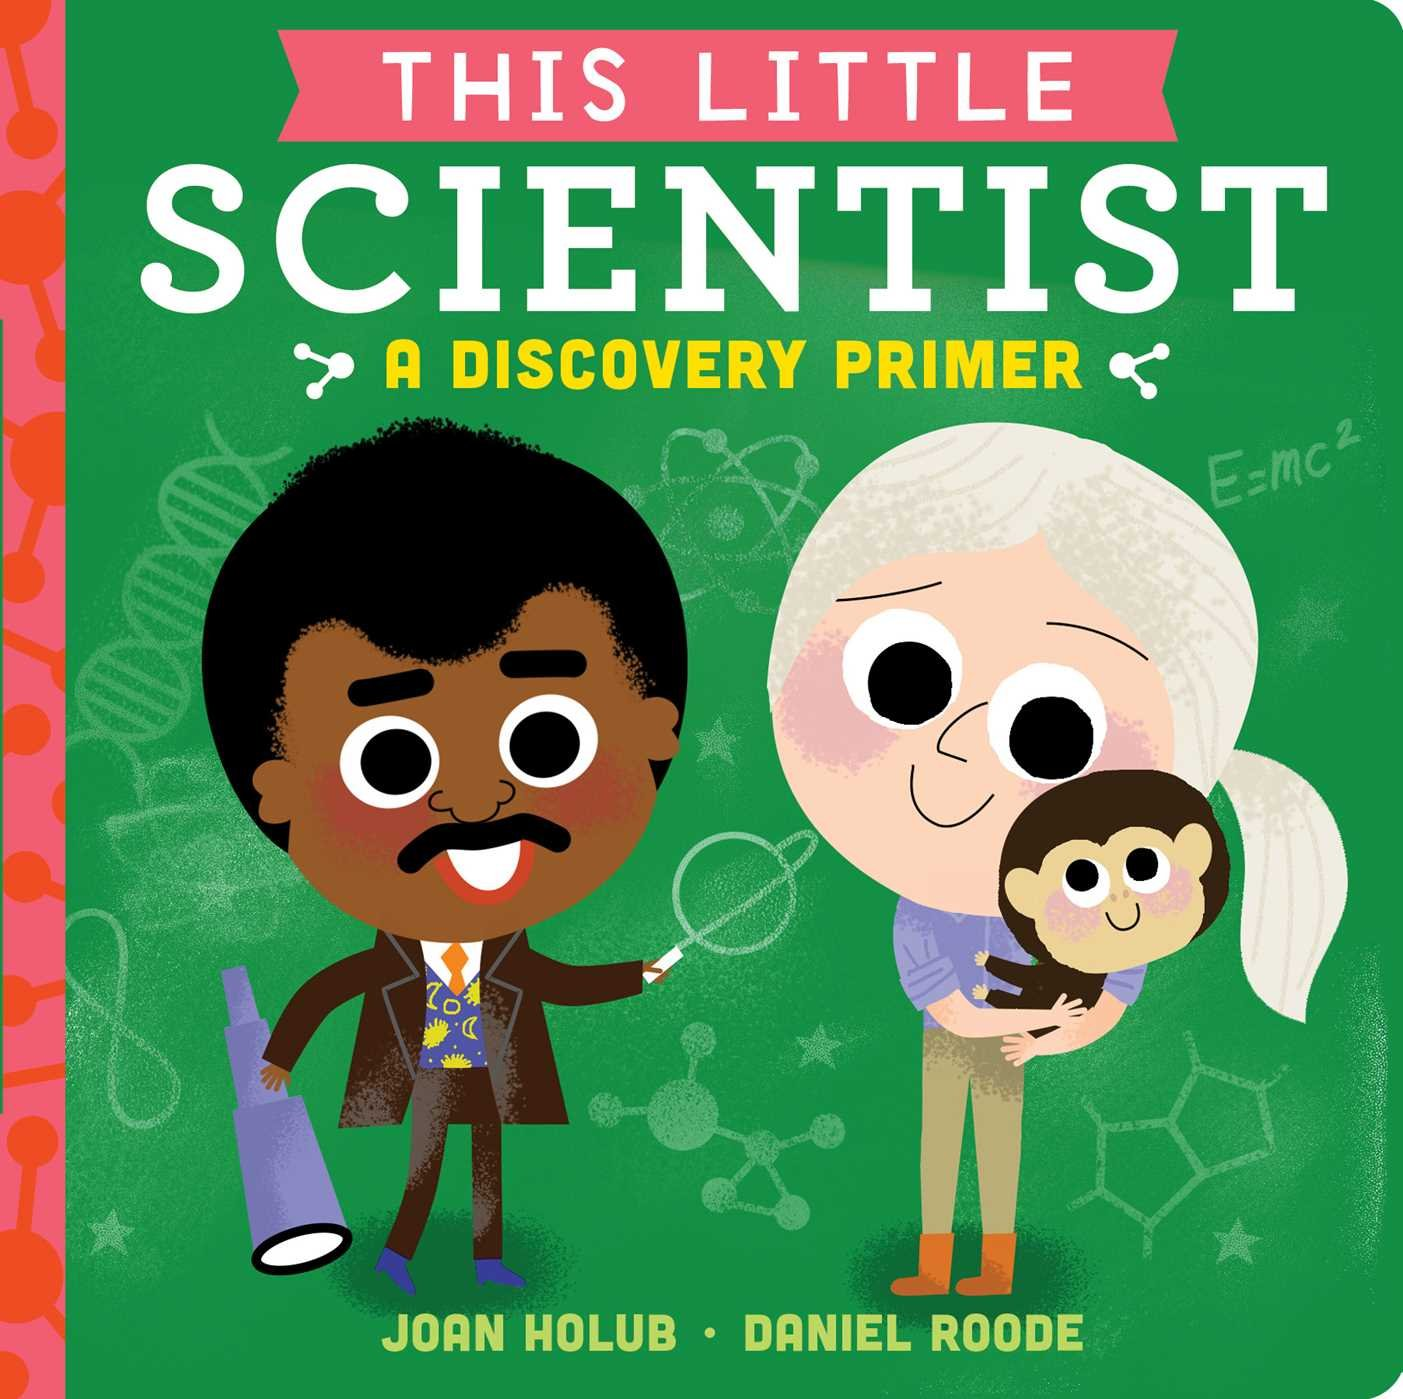 This Little Scientist: A Discovery Primer: Holub, Joan, Roode, Daniel:  9781534401082: Amazon.com: Books